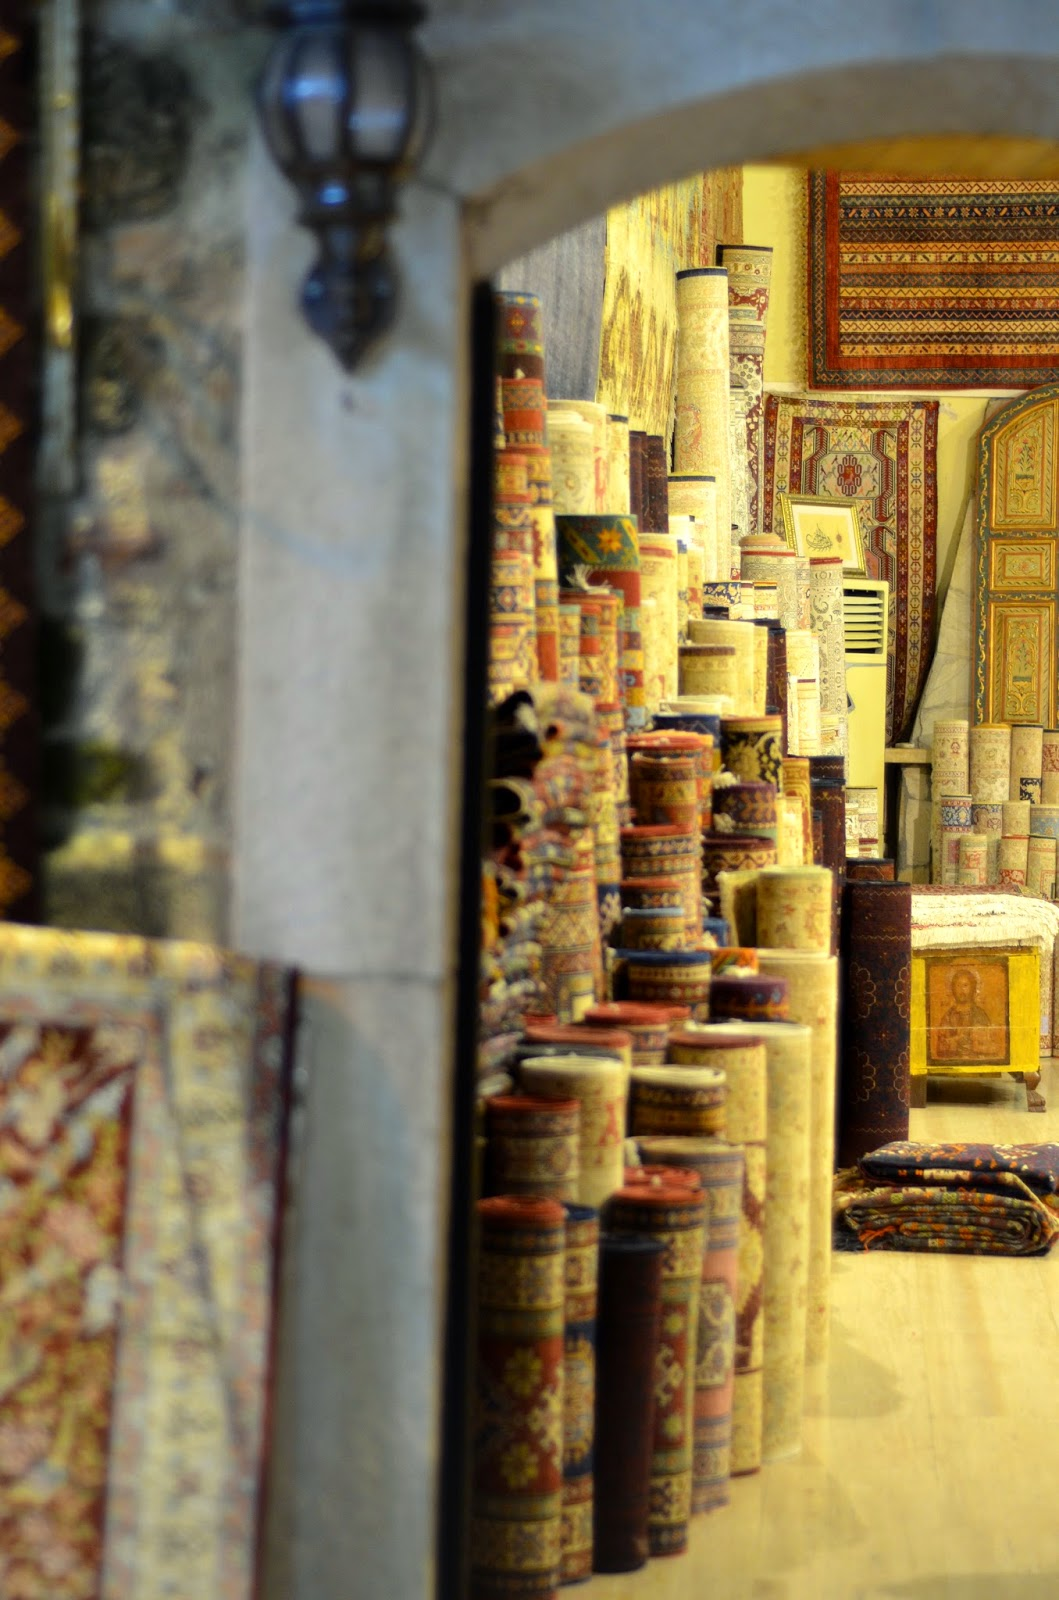 hand-made-carpet-shop-old-town-antalya-turkey